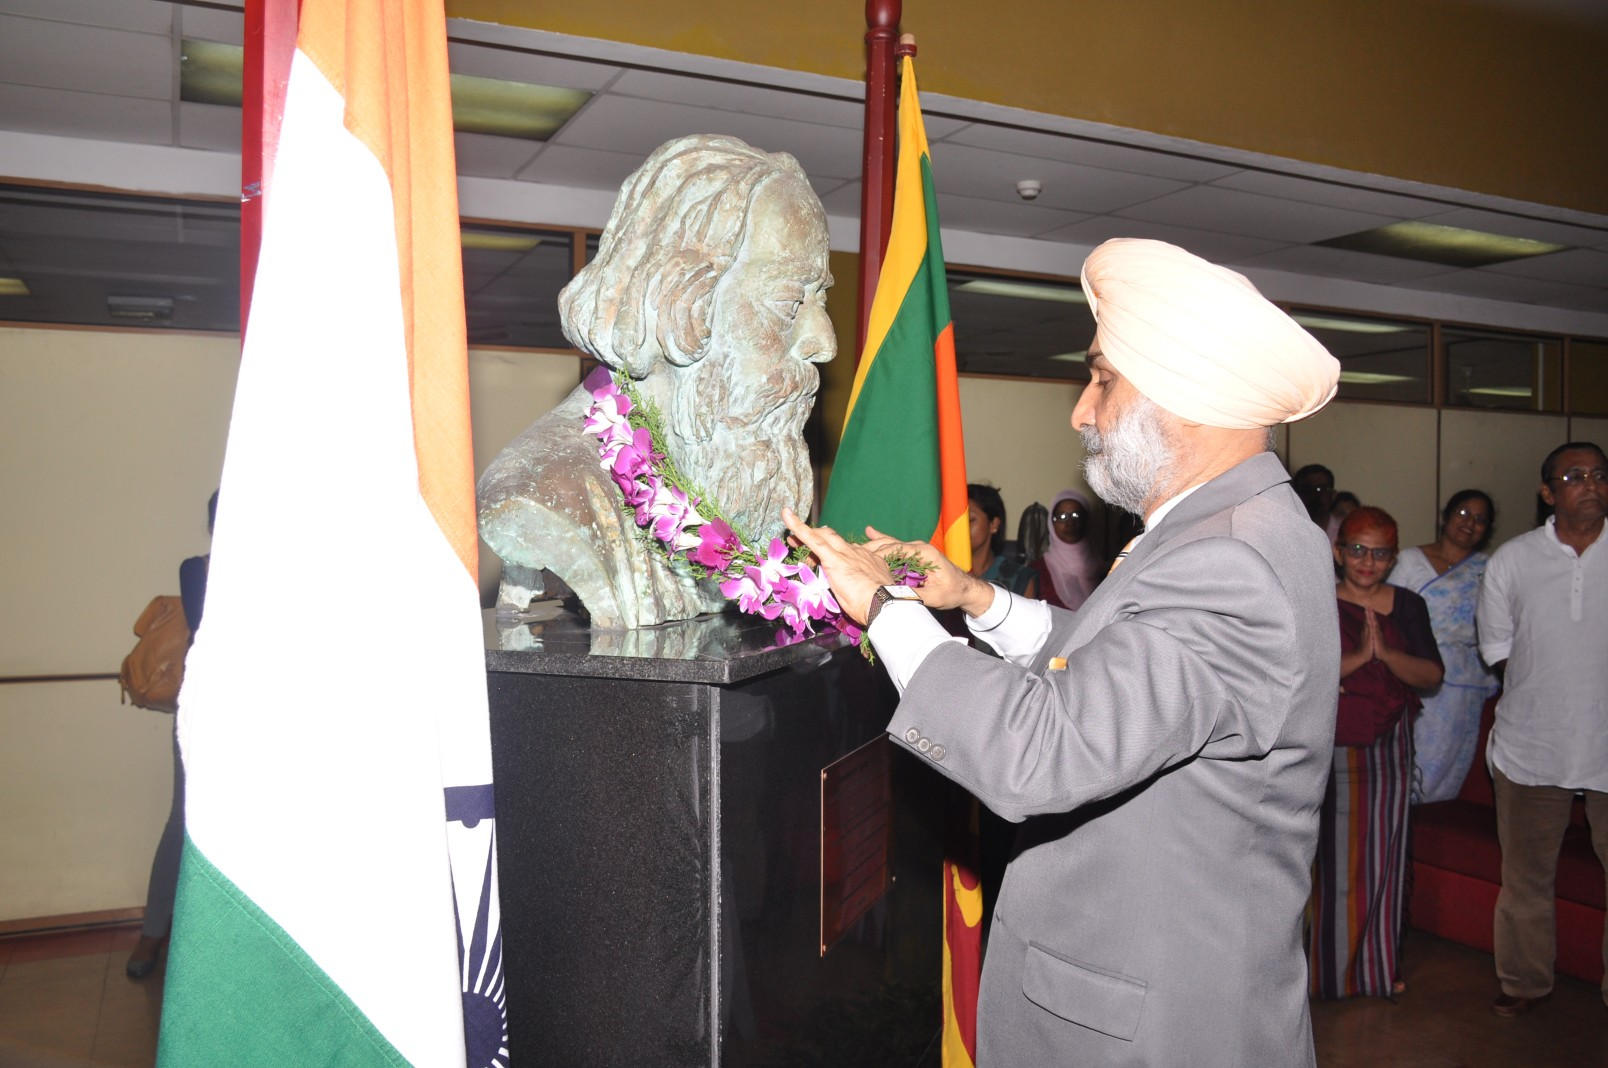 Garlanding of the Bust of Rabindranath Tagore